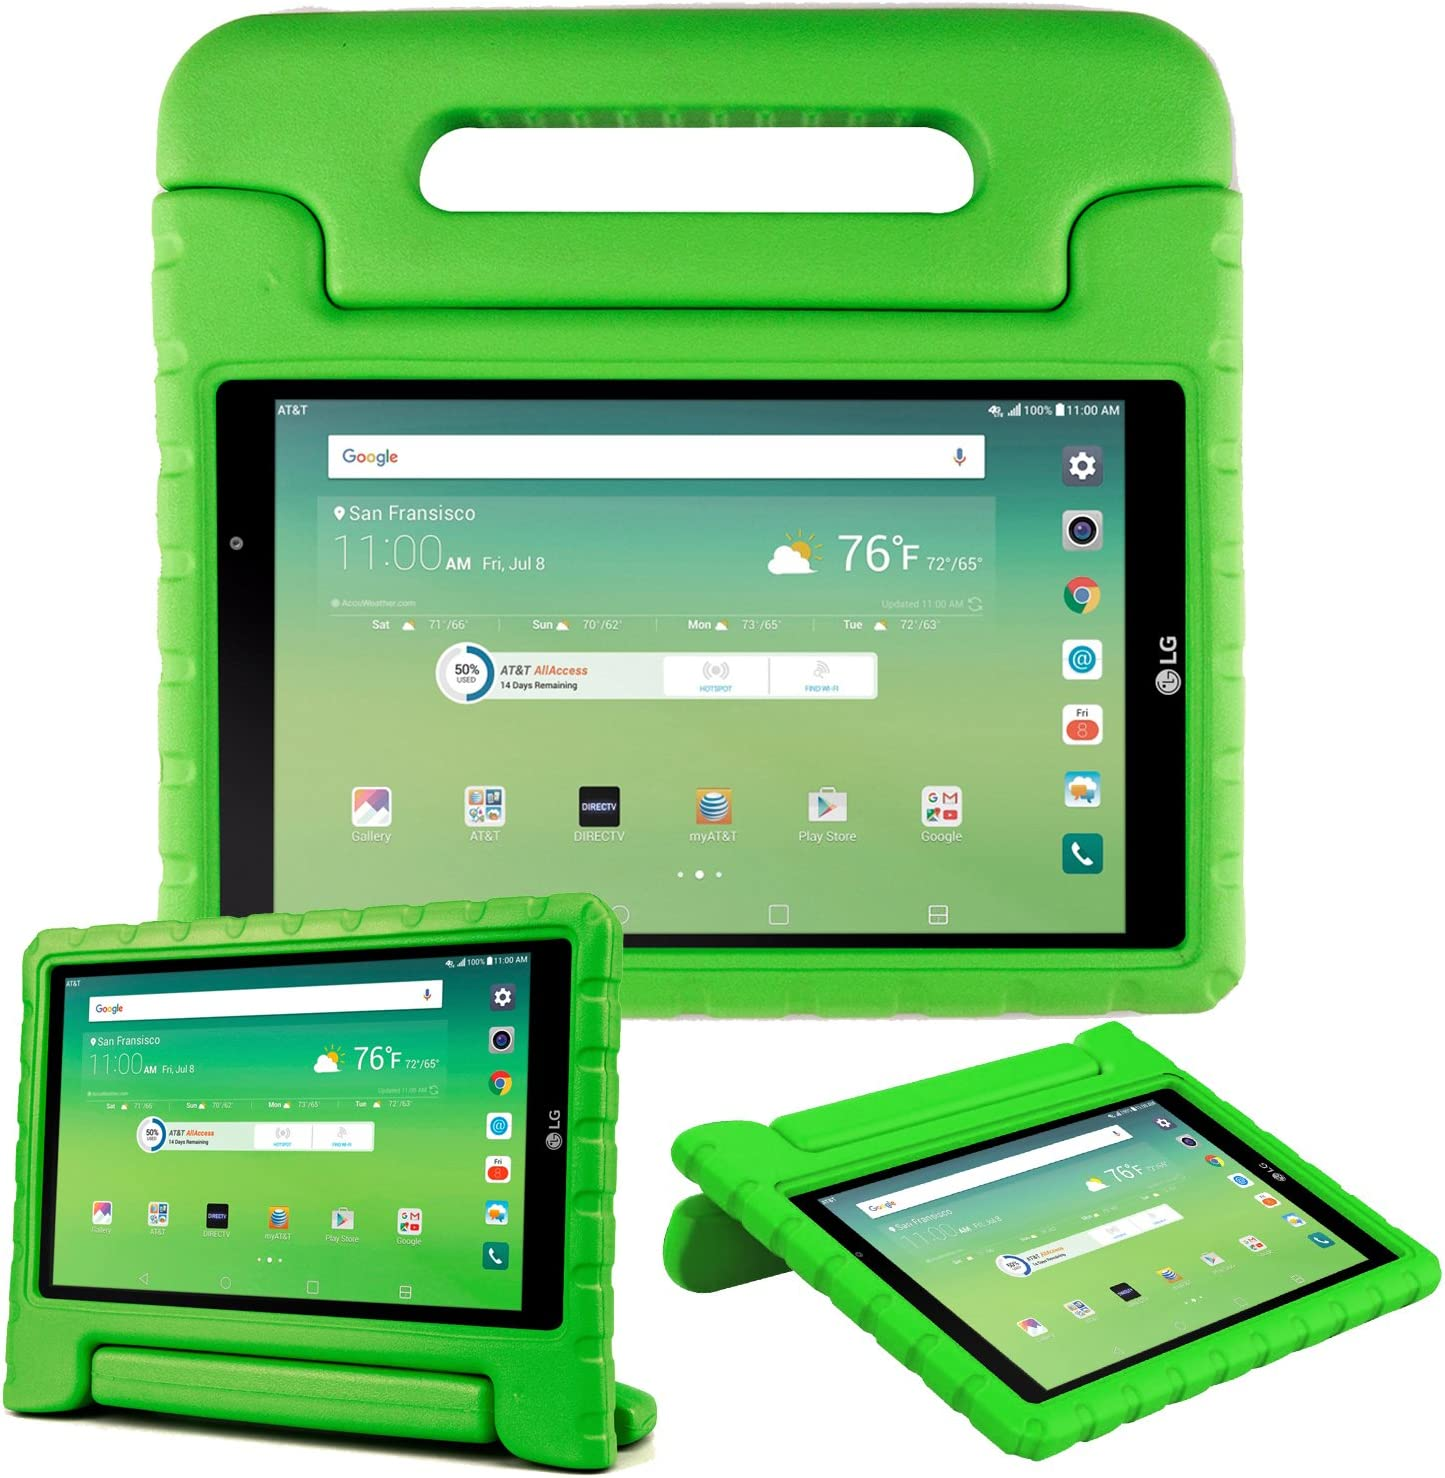 Bolete LG G Pad X 8.0 Inch kids Case, Shock Proof Super Protective Eva Foam Case Cover With Handle Stand for LG G Pad X 8.0 T-Mobile V521 / AT&T V520 Tablet, Green